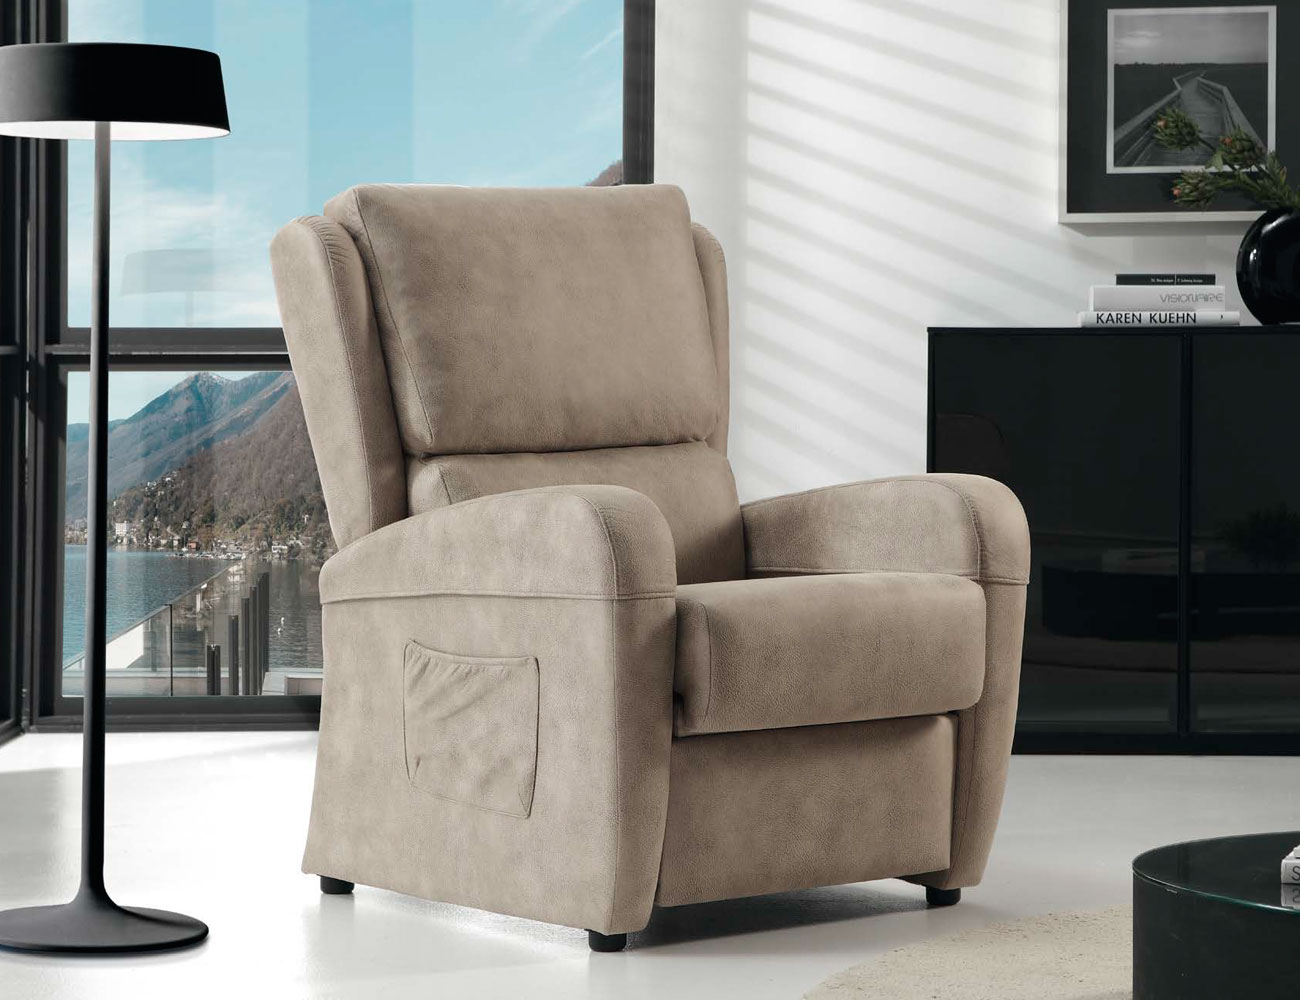 Sillon relax manual jana4